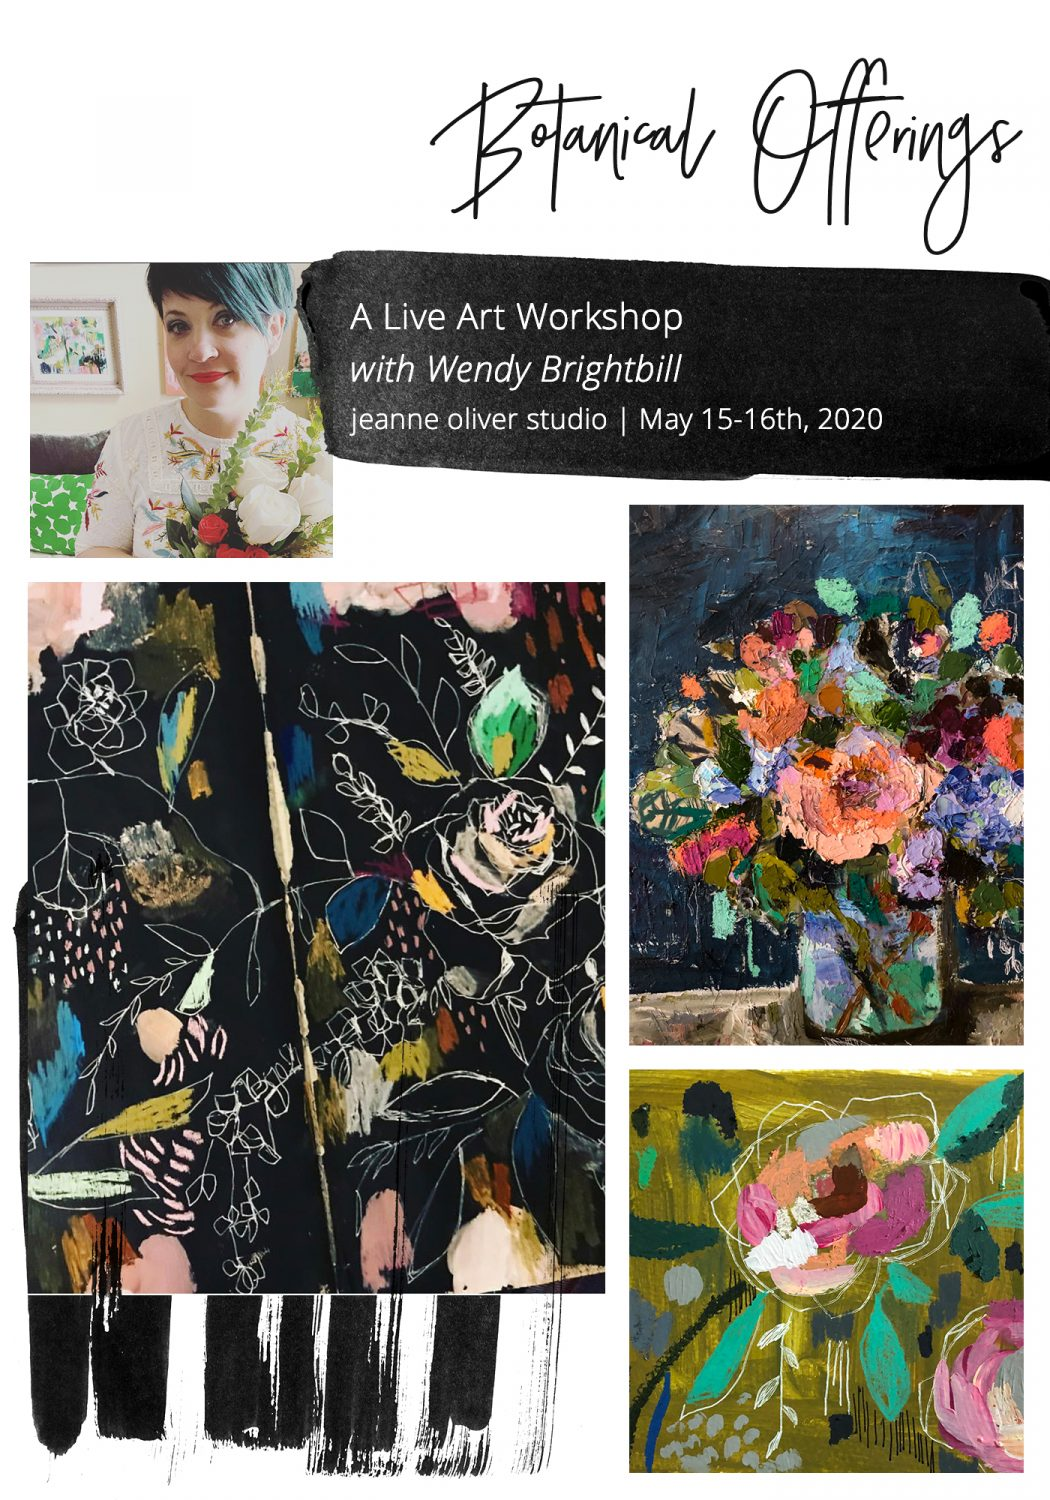 Botanical Offerings with Wendy Brighbill